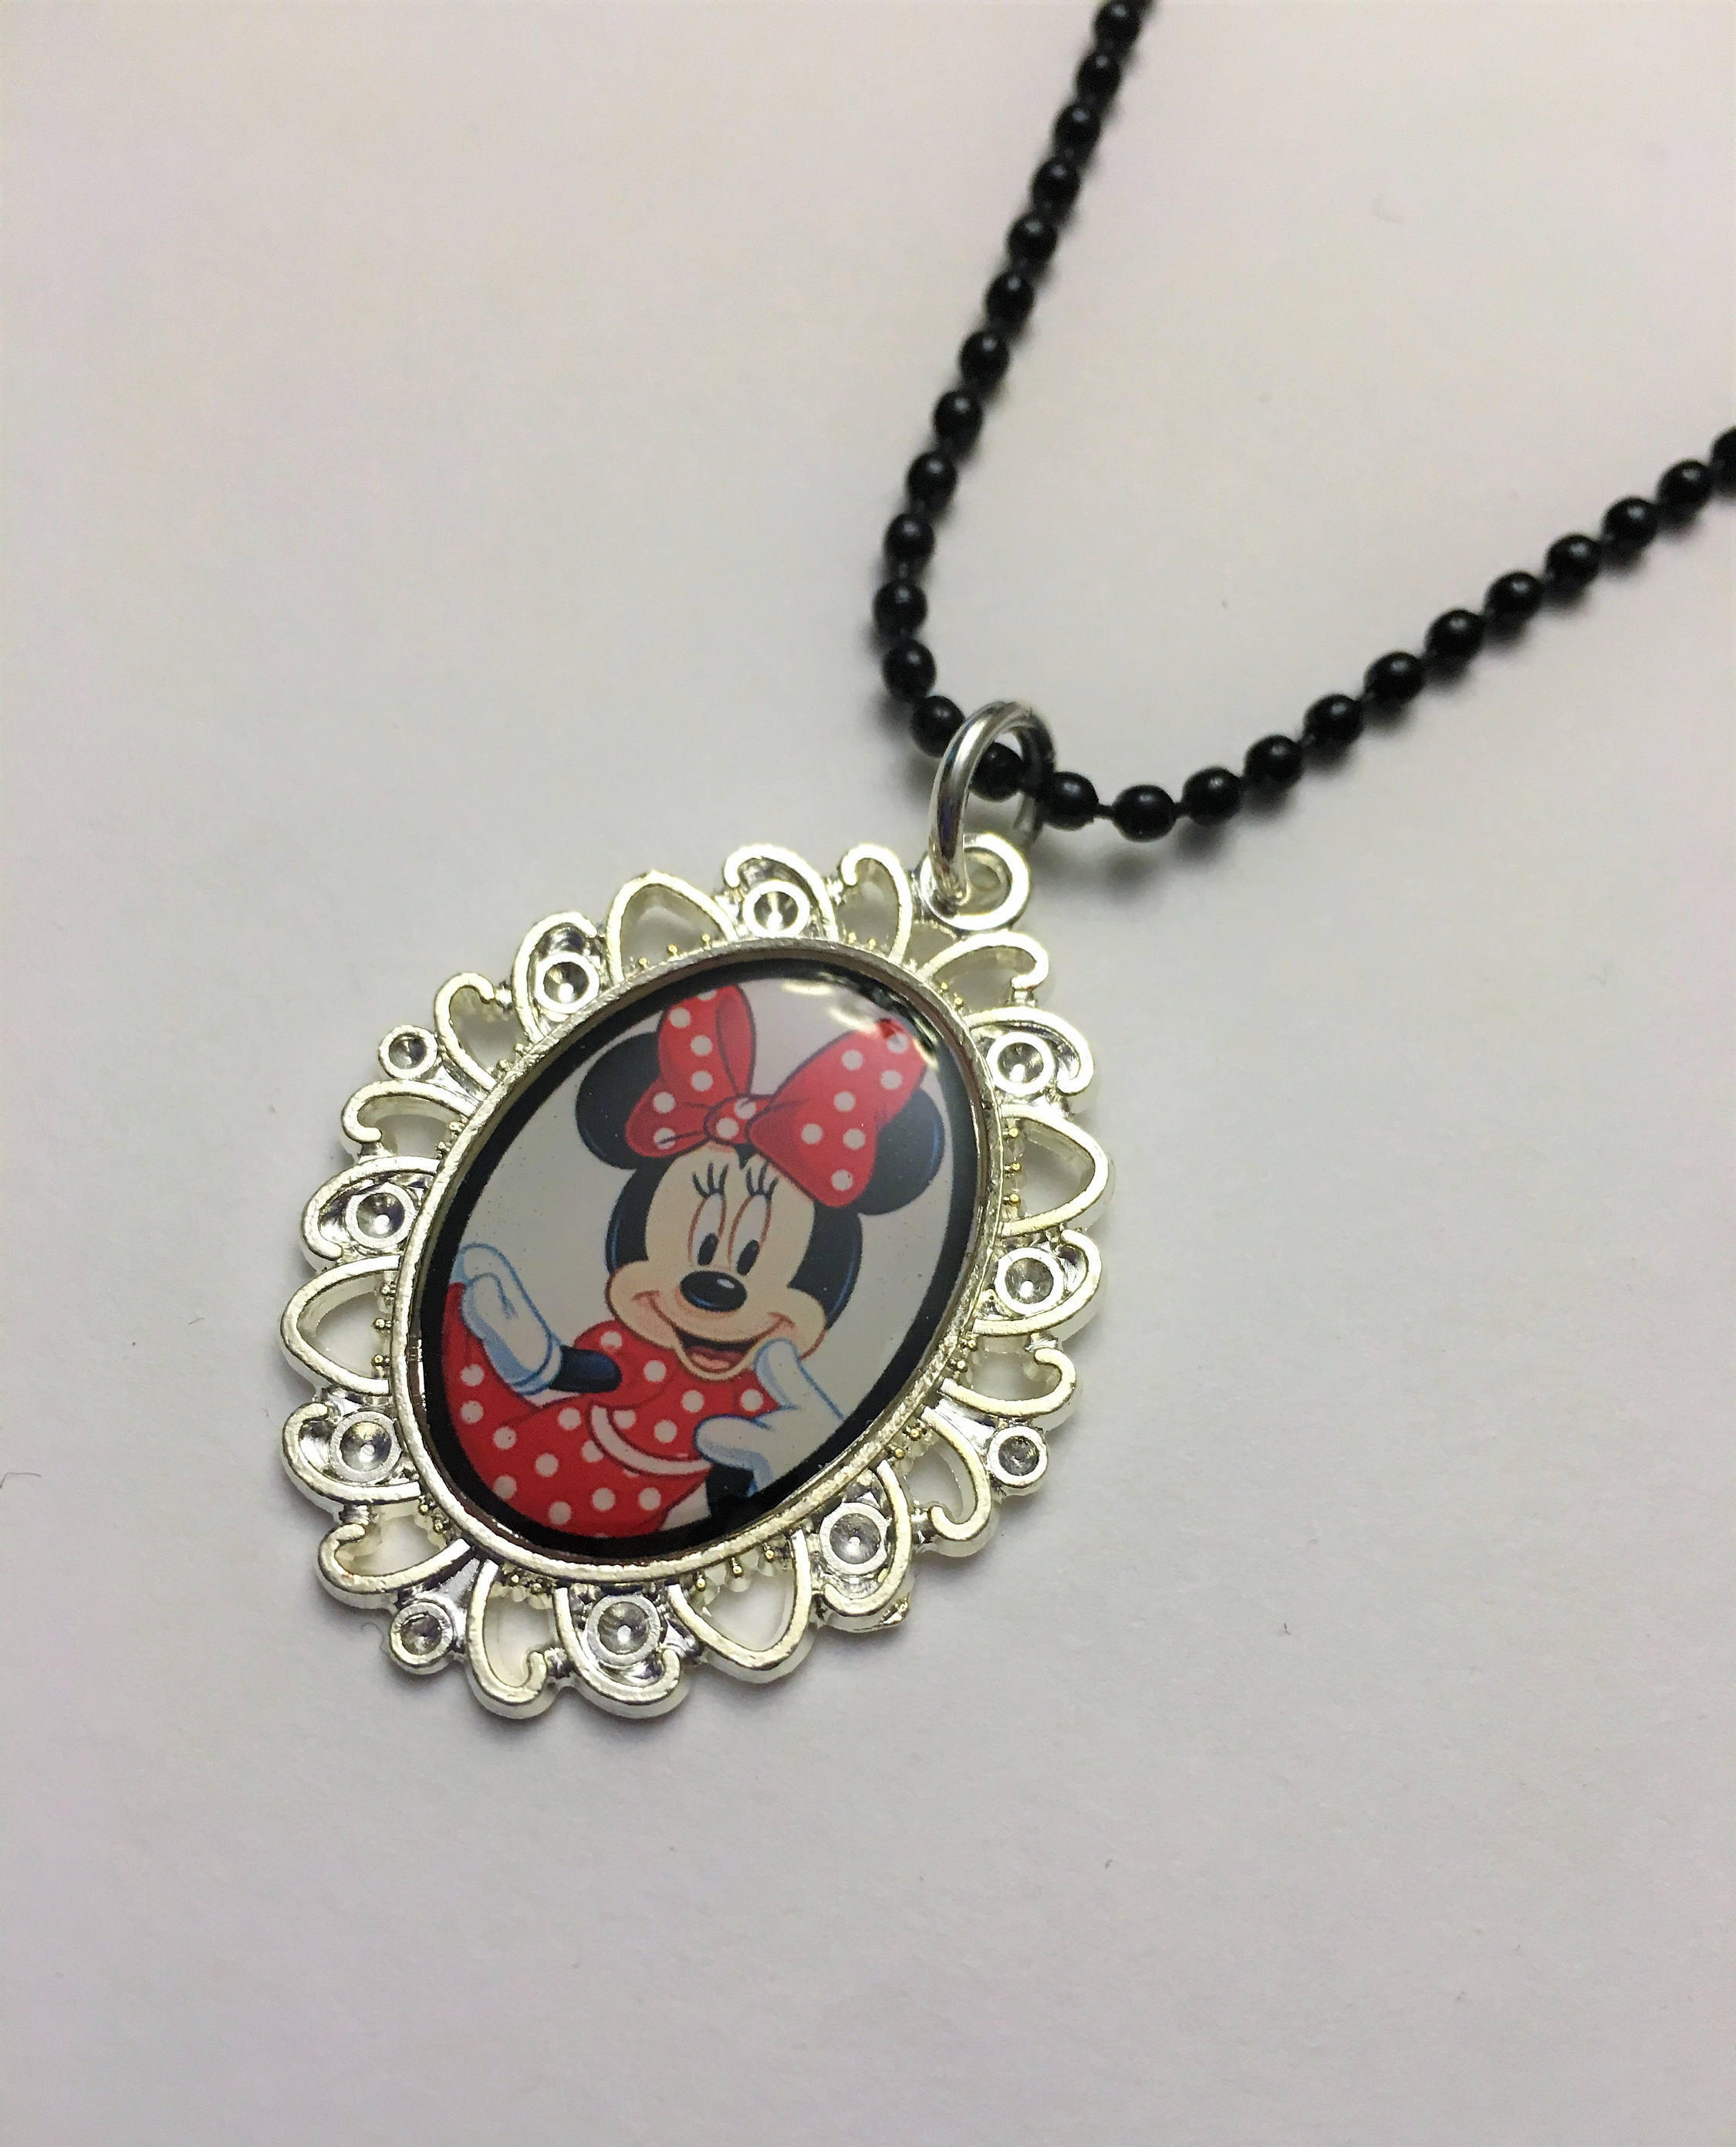 Minnie Mouse Pendant Necklace, Little Girl Necklace, Toddler, Child, Kids  Jewelry, Baby Girl,gift For Daughter, Niece, Granddaughter, Friend Inside Most Recent Disney Minnie'S Polka Dots Pendant Necklaces (Gallery 18 of 25)